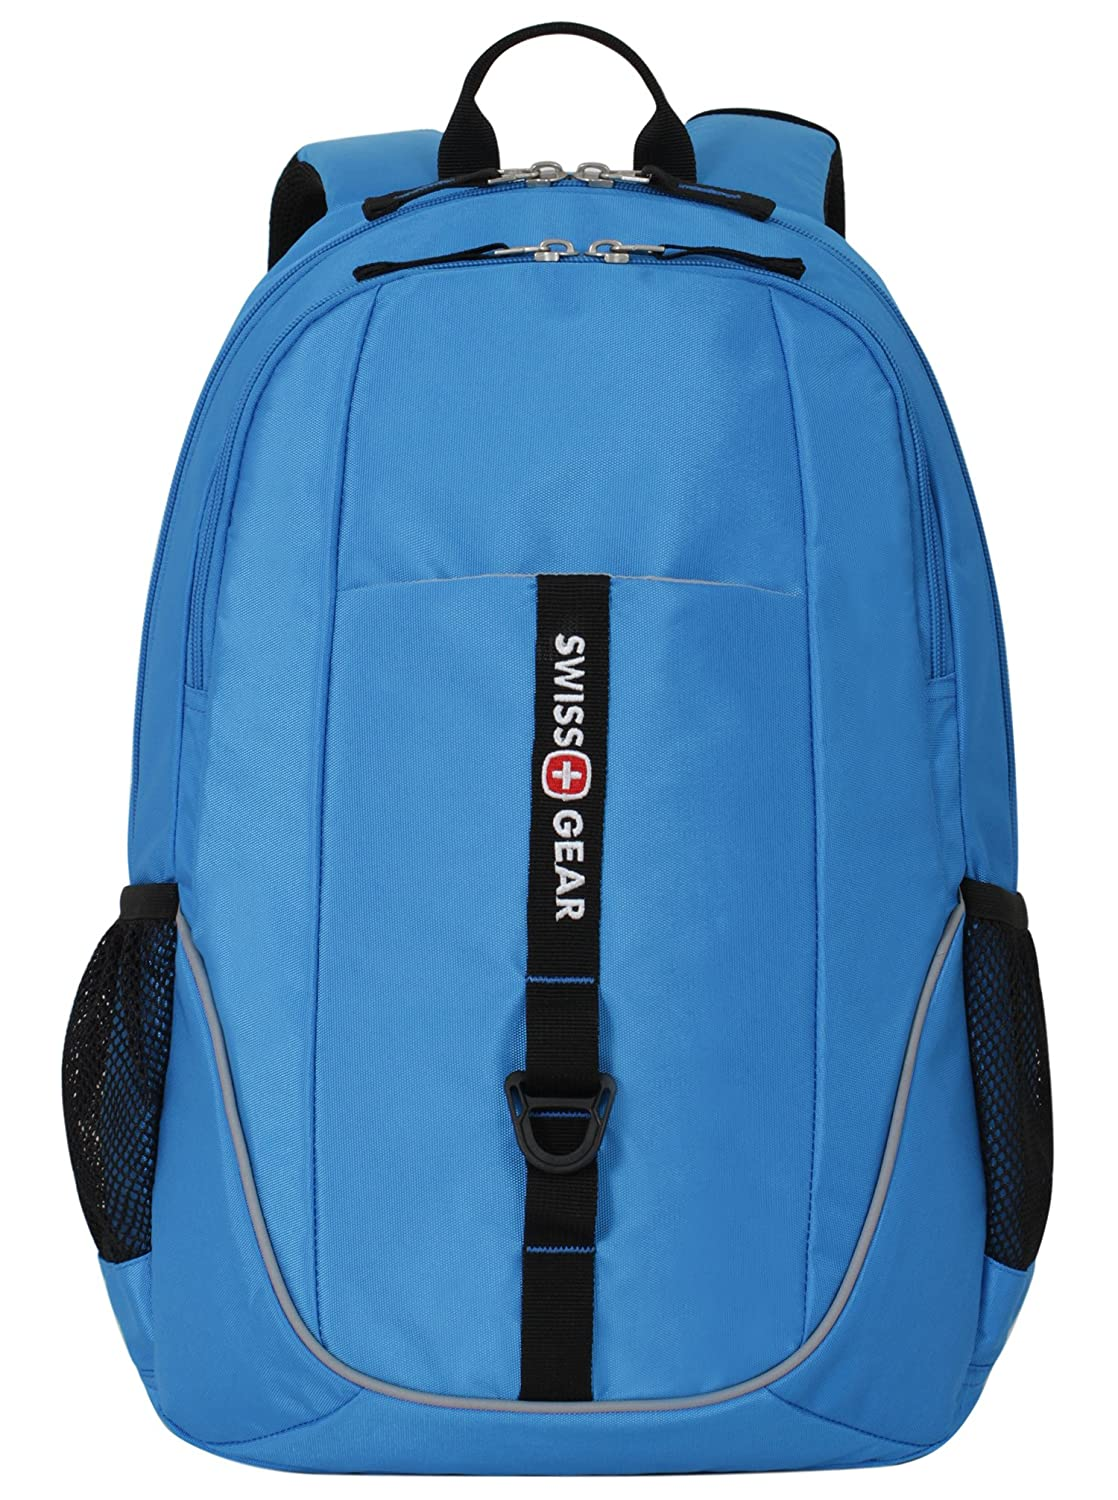 Amazon.com: SwissGear SA6639 Neon Blue Computer Backpack - Fits ...